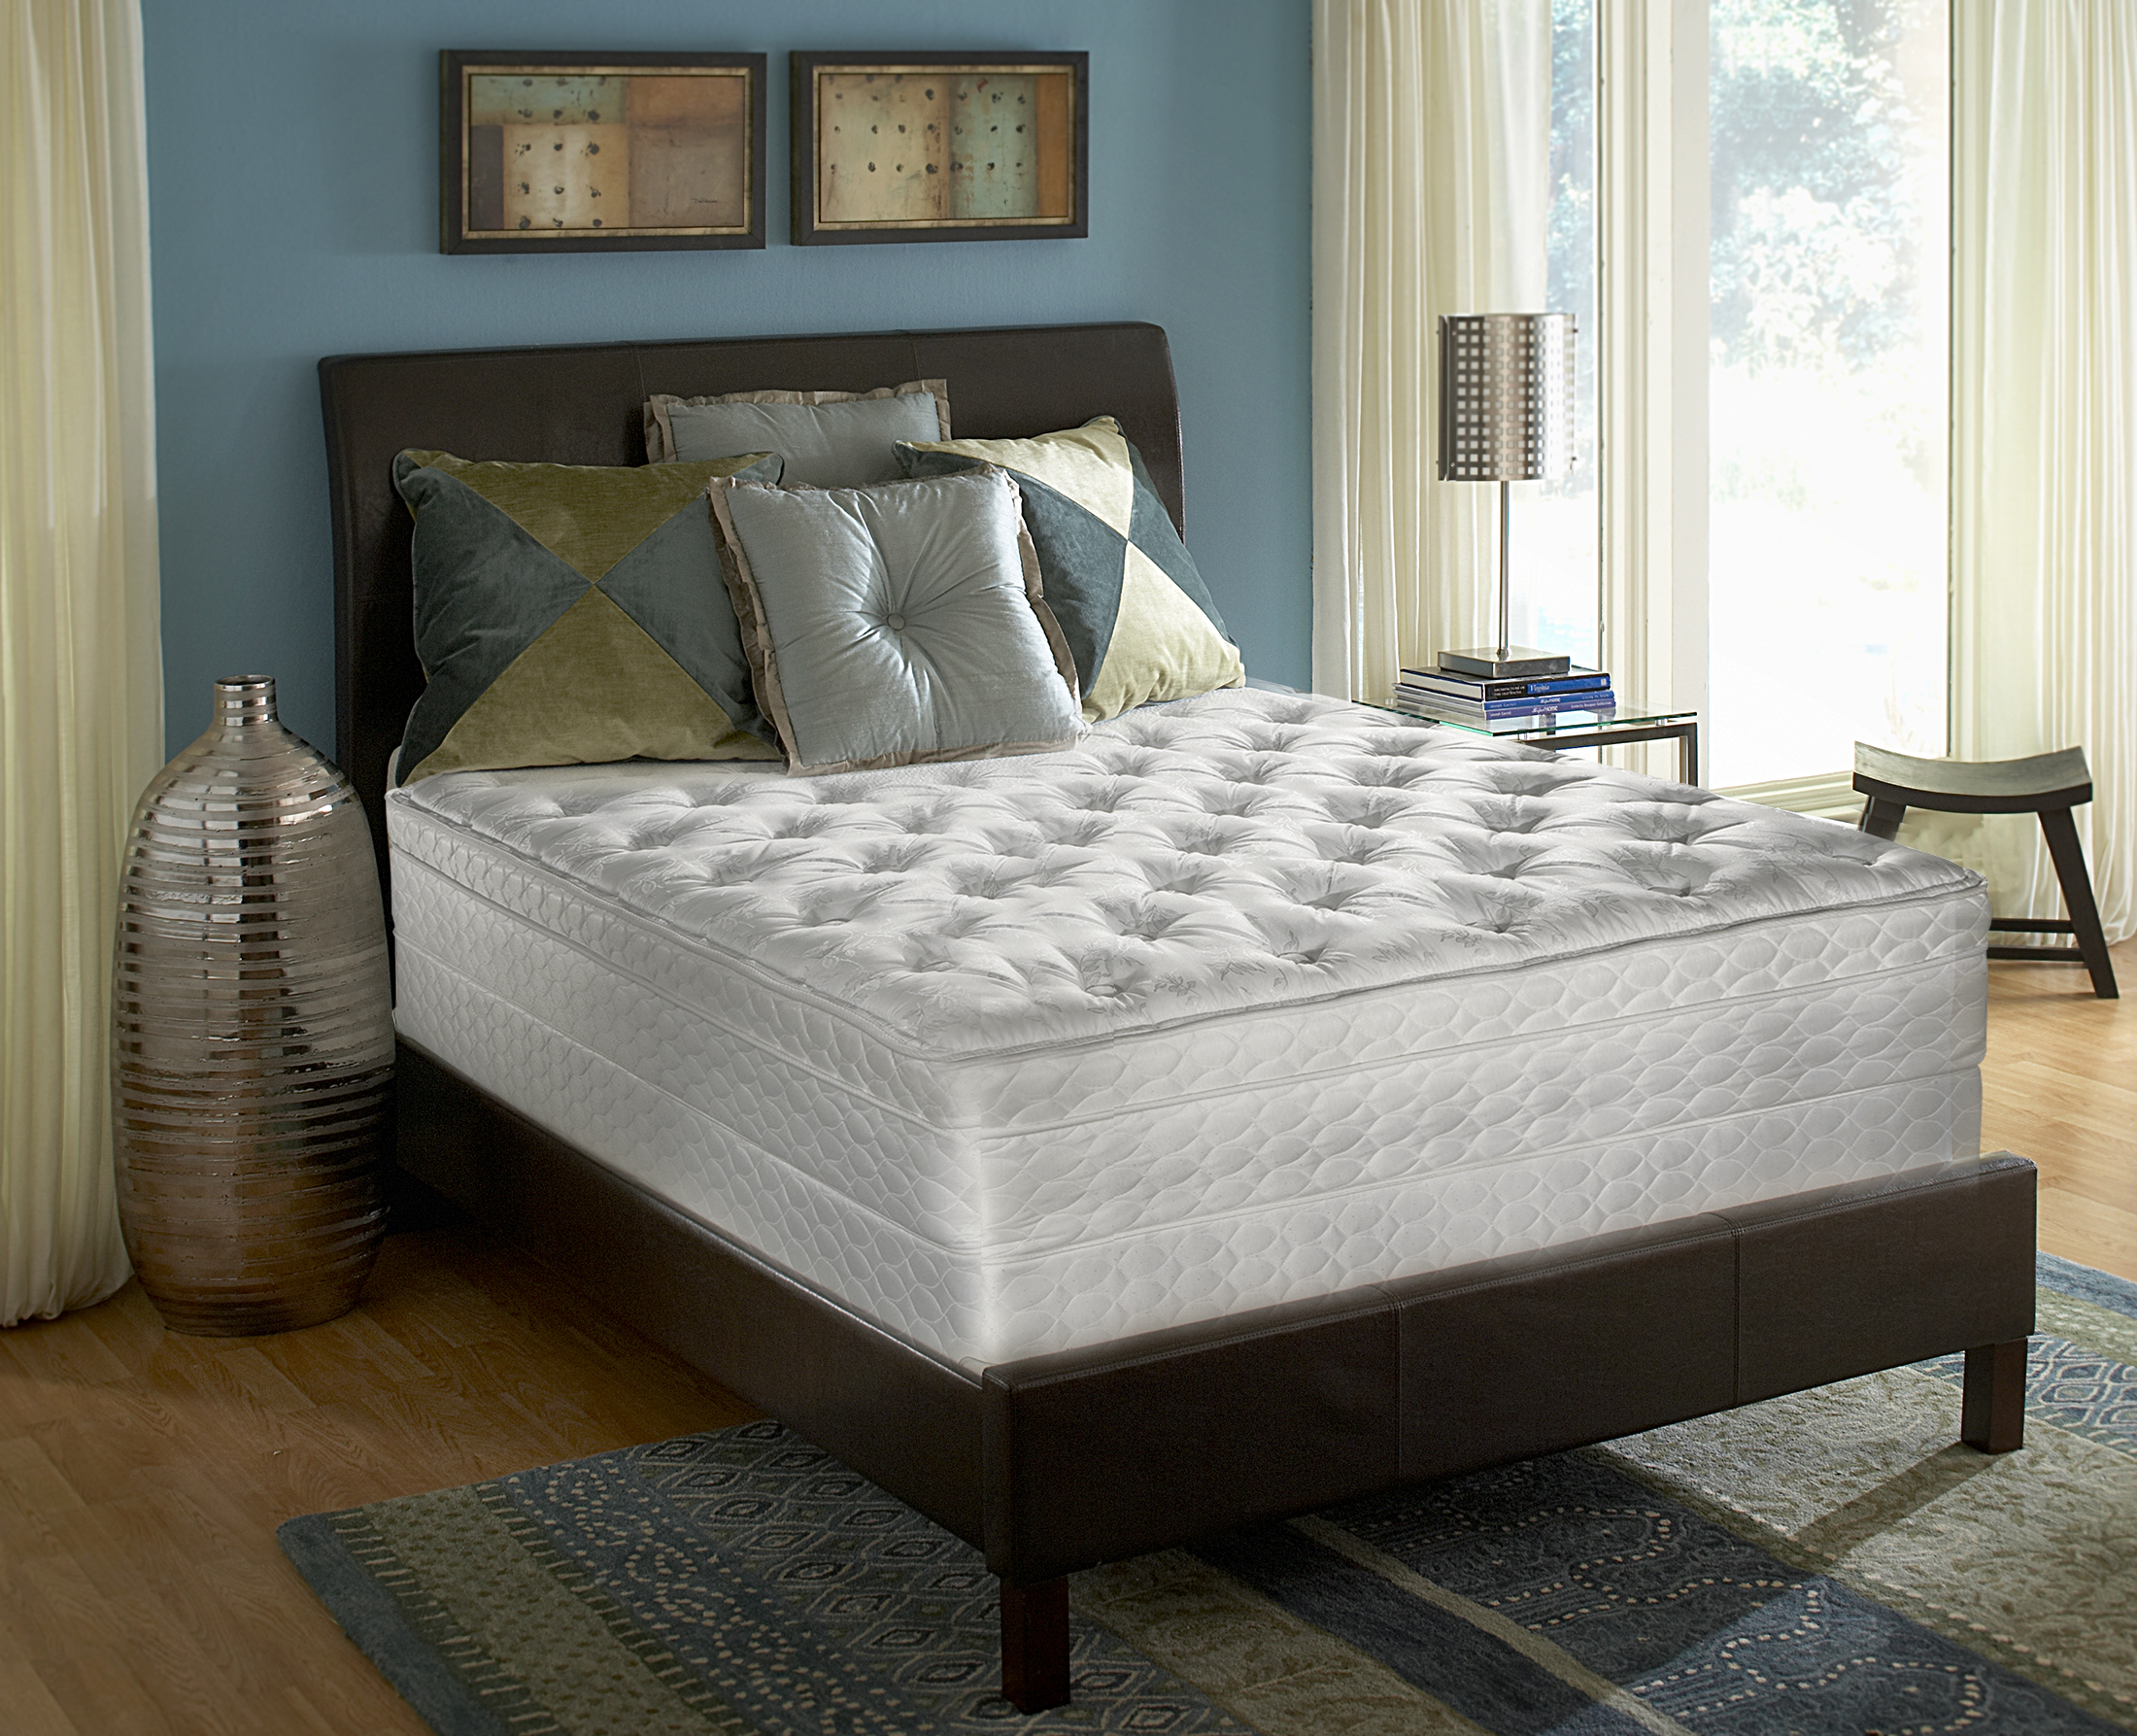 science adjustable and sleep spacious plus image trundle frames intend beds twin best mattress matress ebee of in costco headboard for split bedroom on frame king bed